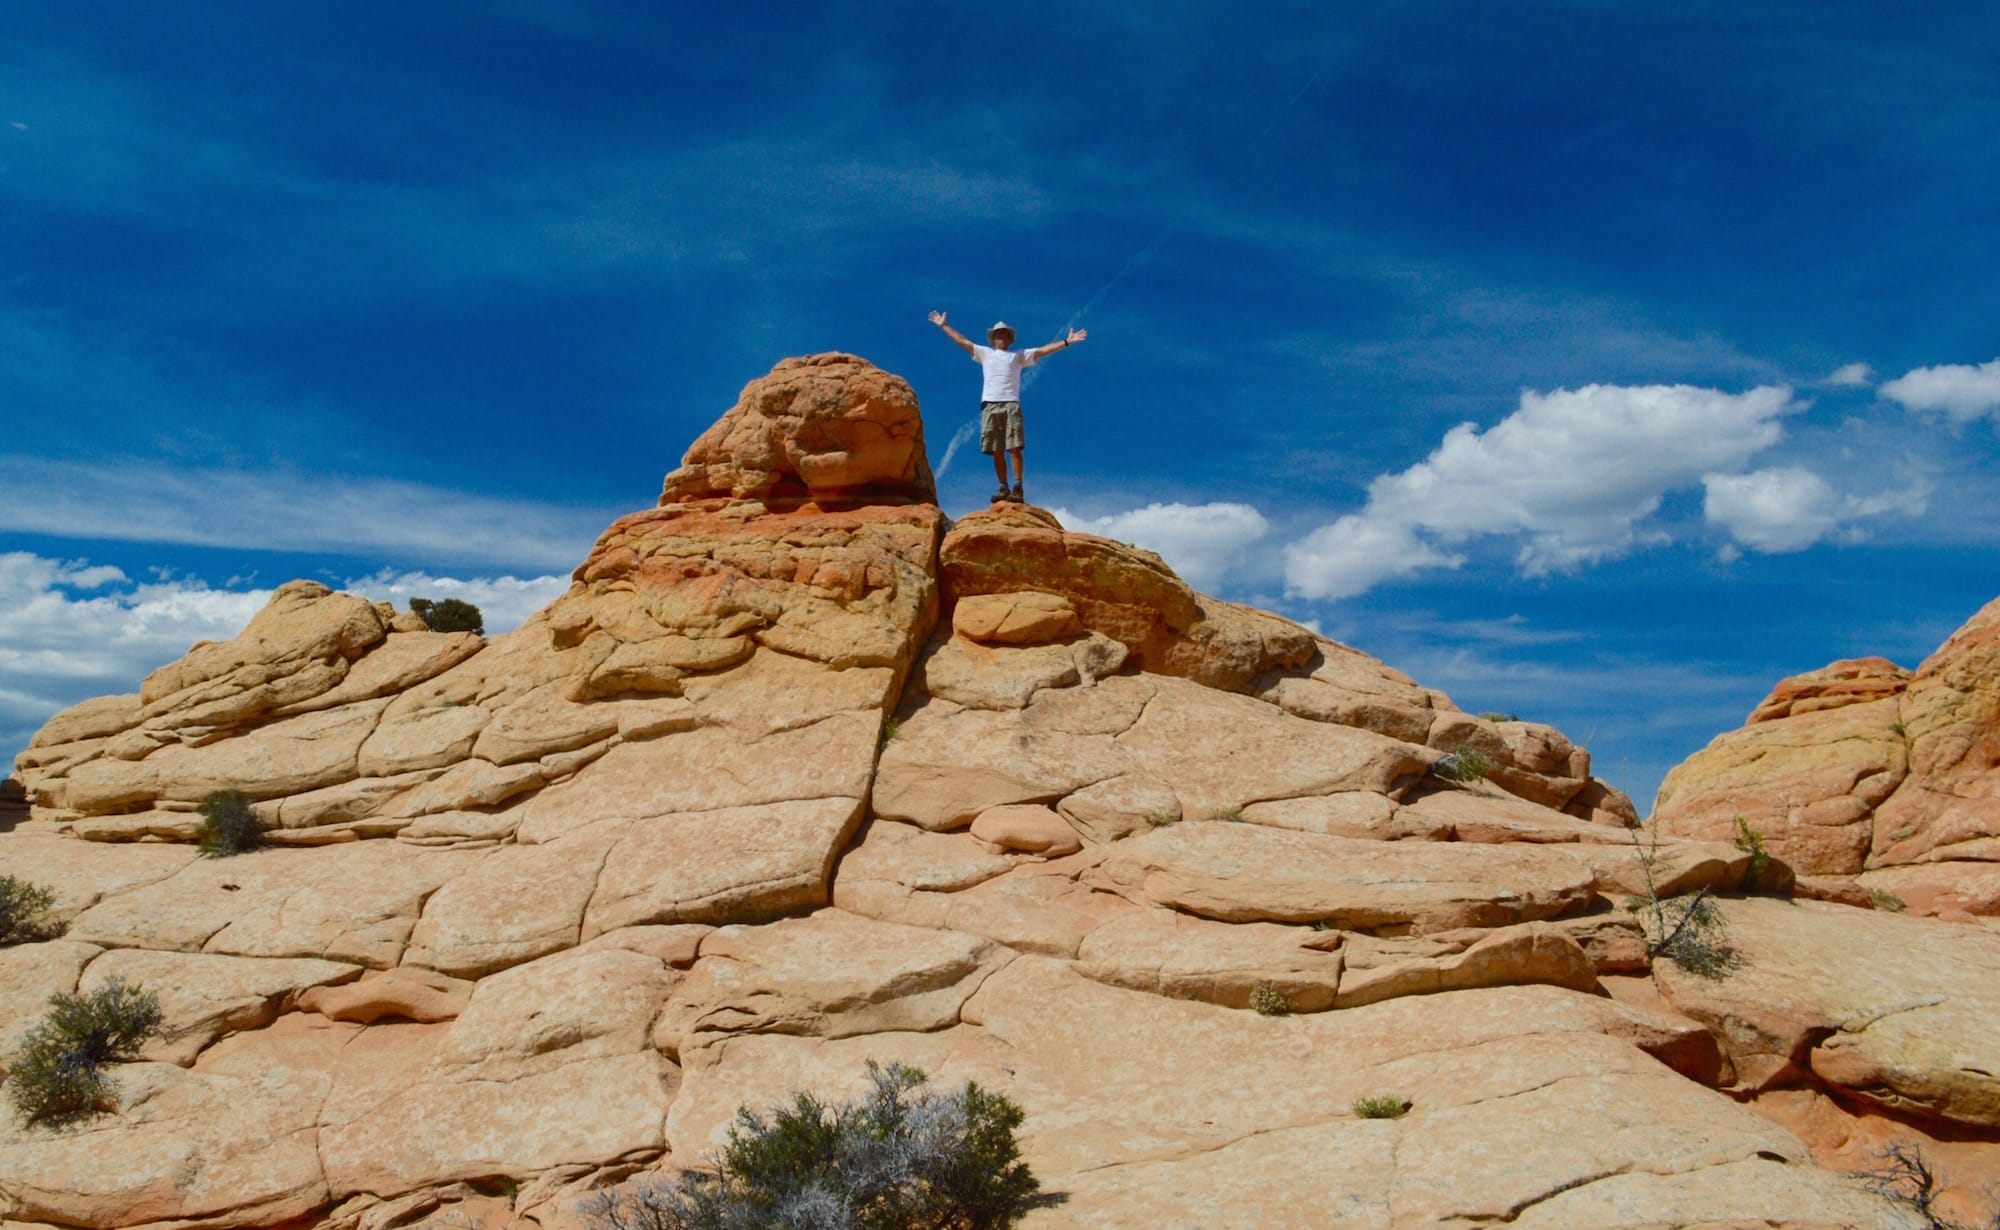 Man with outstretched arms at South Coyote Buttes